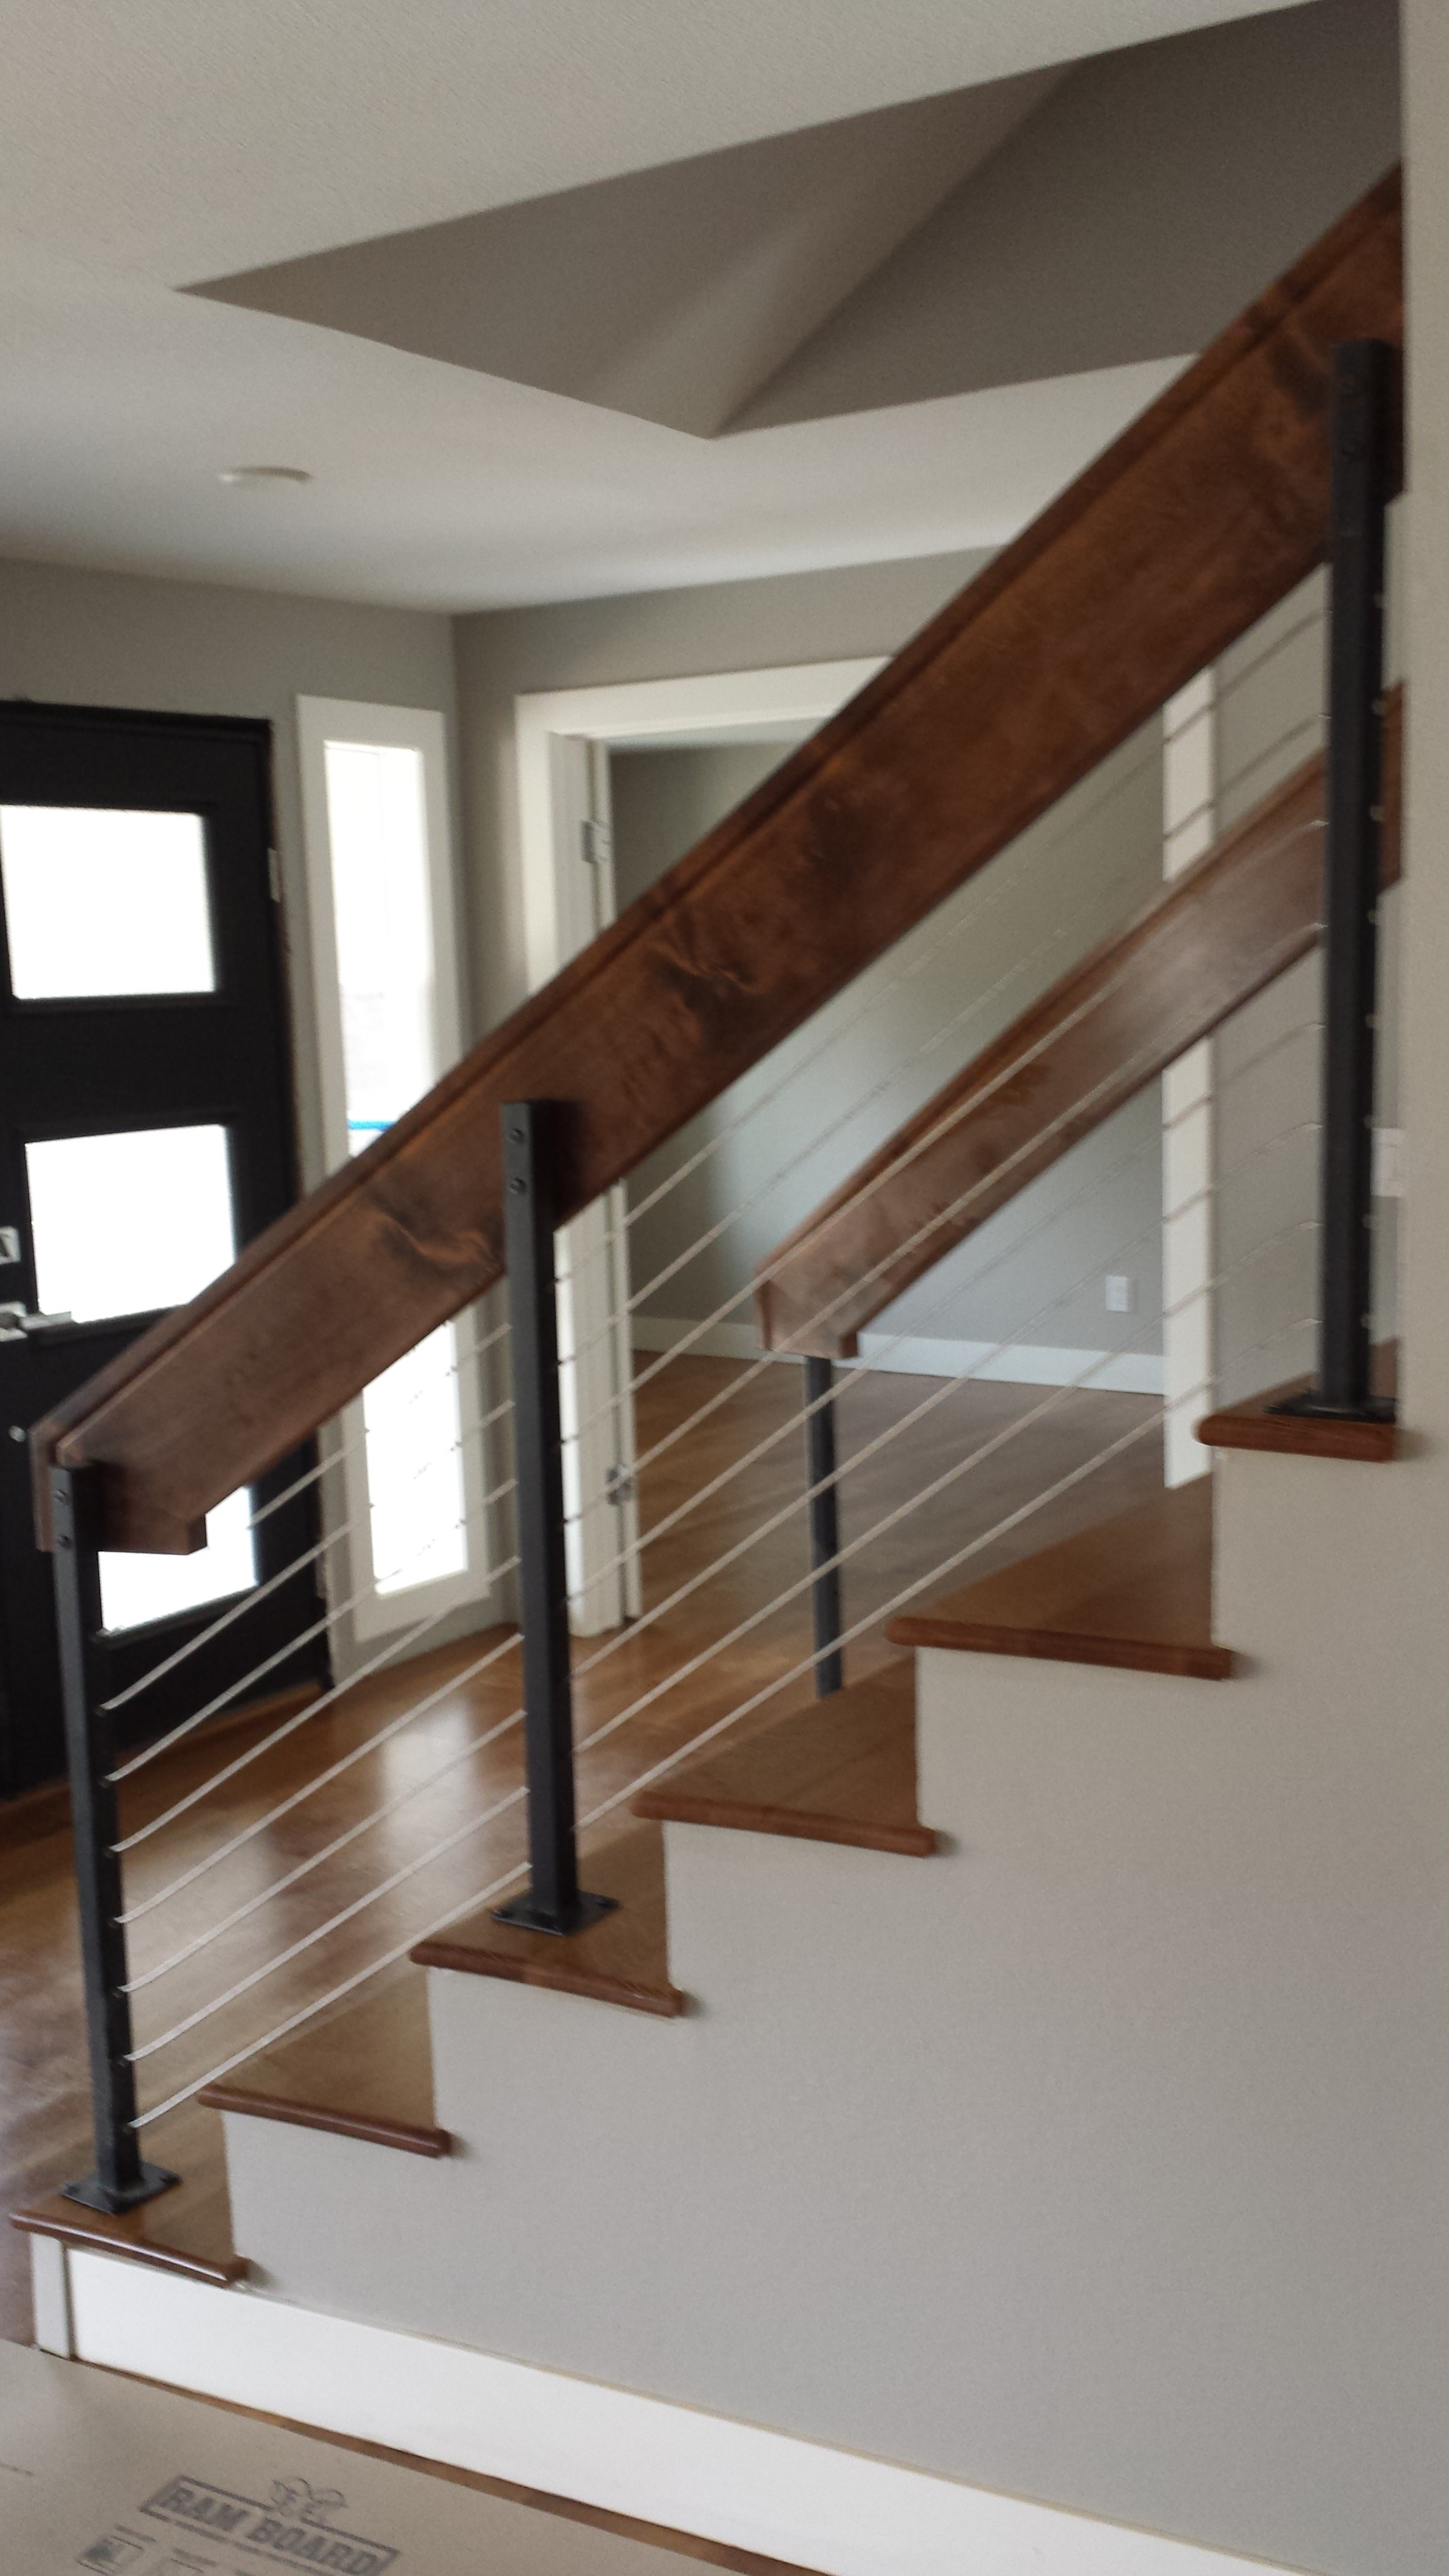 joy railing design handrails mounted on wood l studio car interior stair half wall